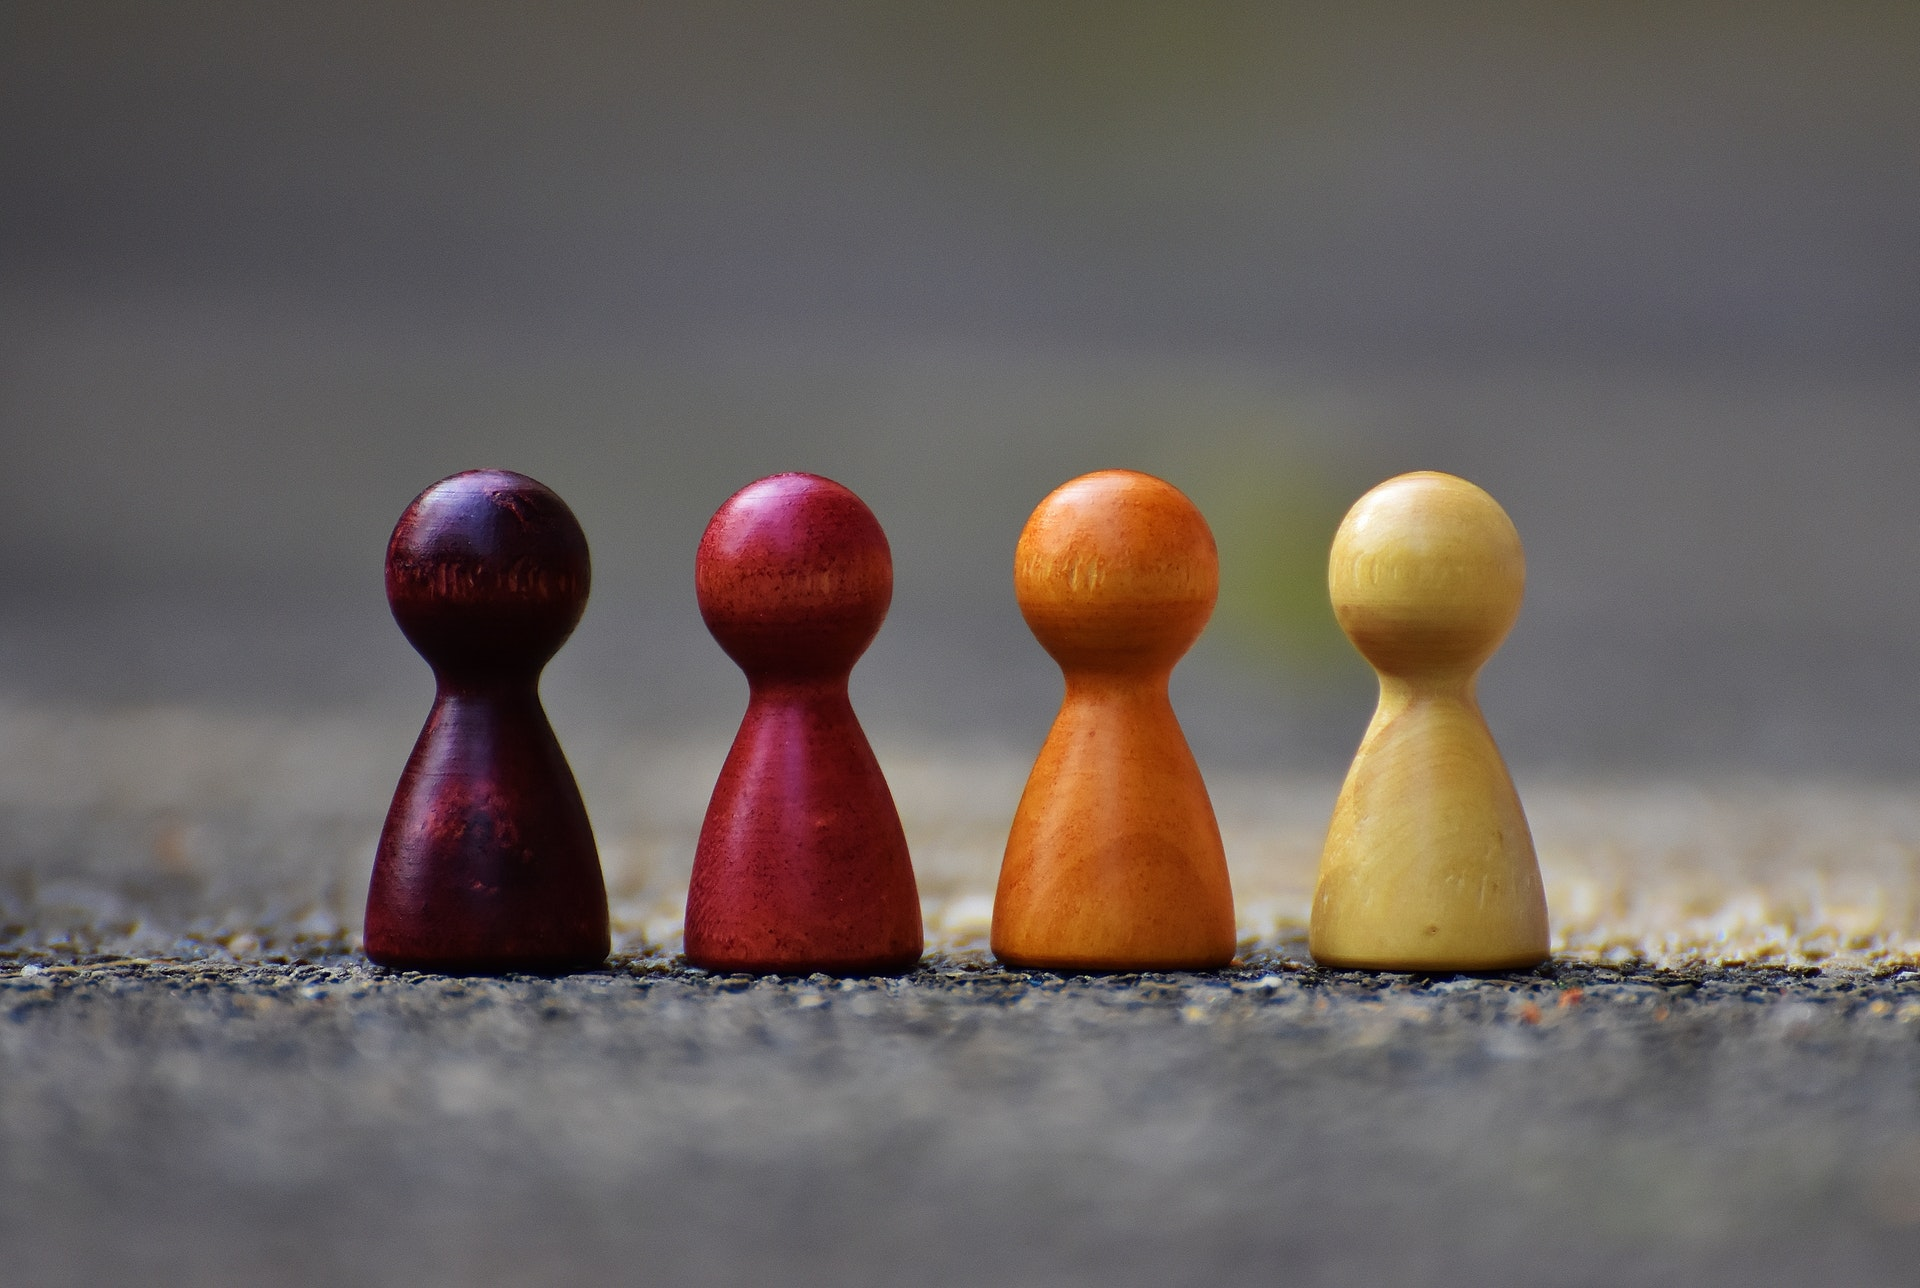 3 Tips for Creating an Online Space for Your Community